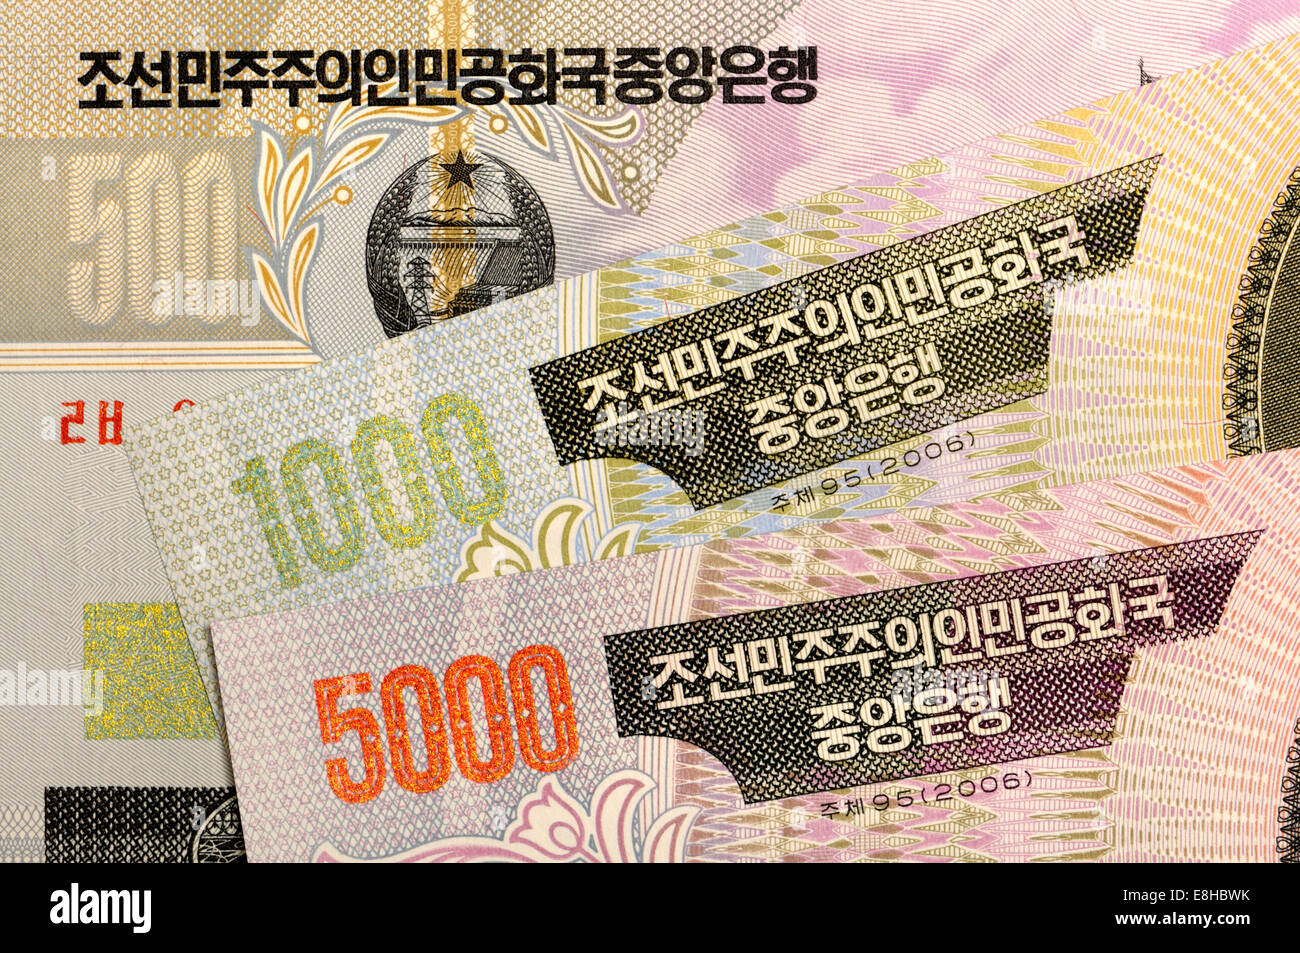 Detail from North Korean banknotes showing Korean script - Stock Image